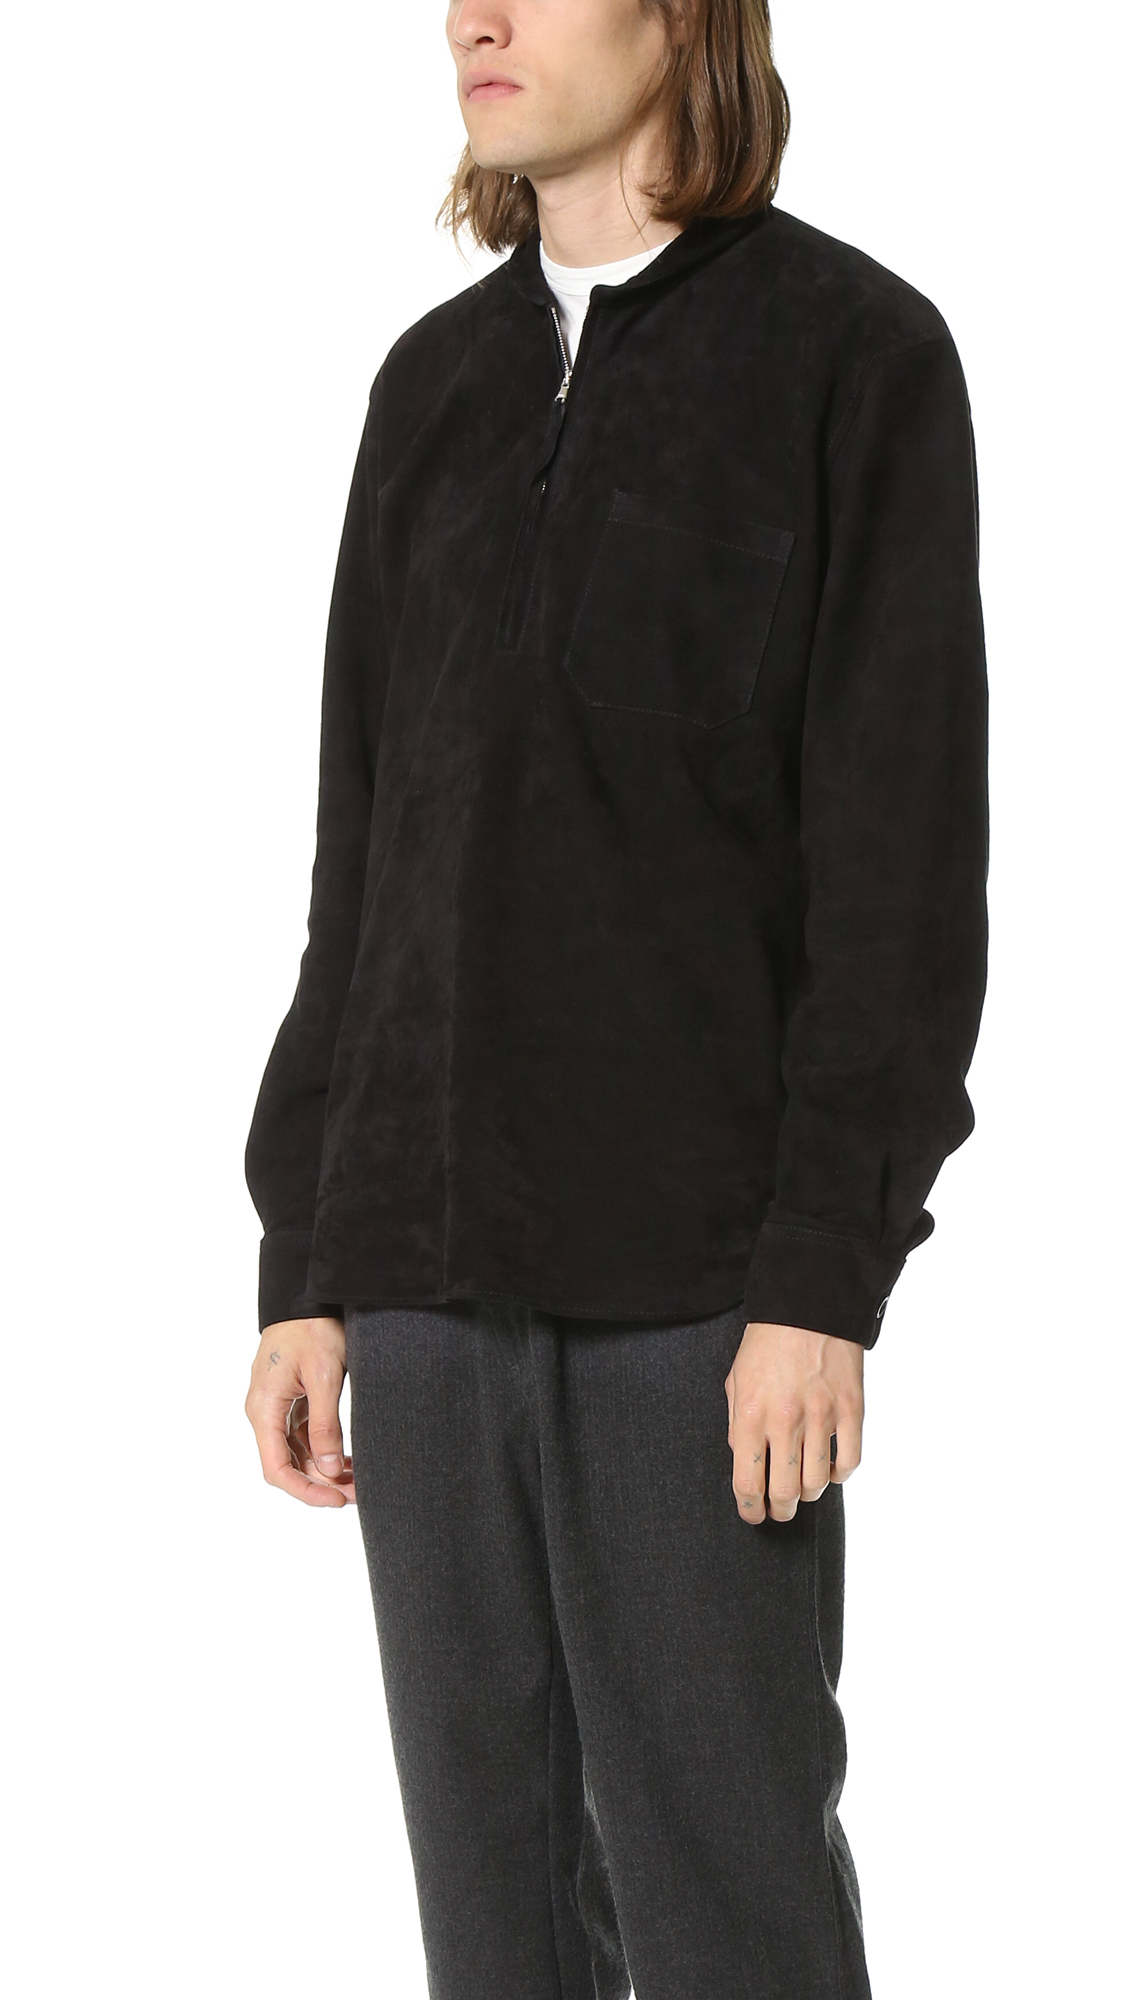 18b4764a1d19 Our Legacy Our Legacy Black Suede Shawl Zip Size s - Leather Jackets for  Sale - Grailed